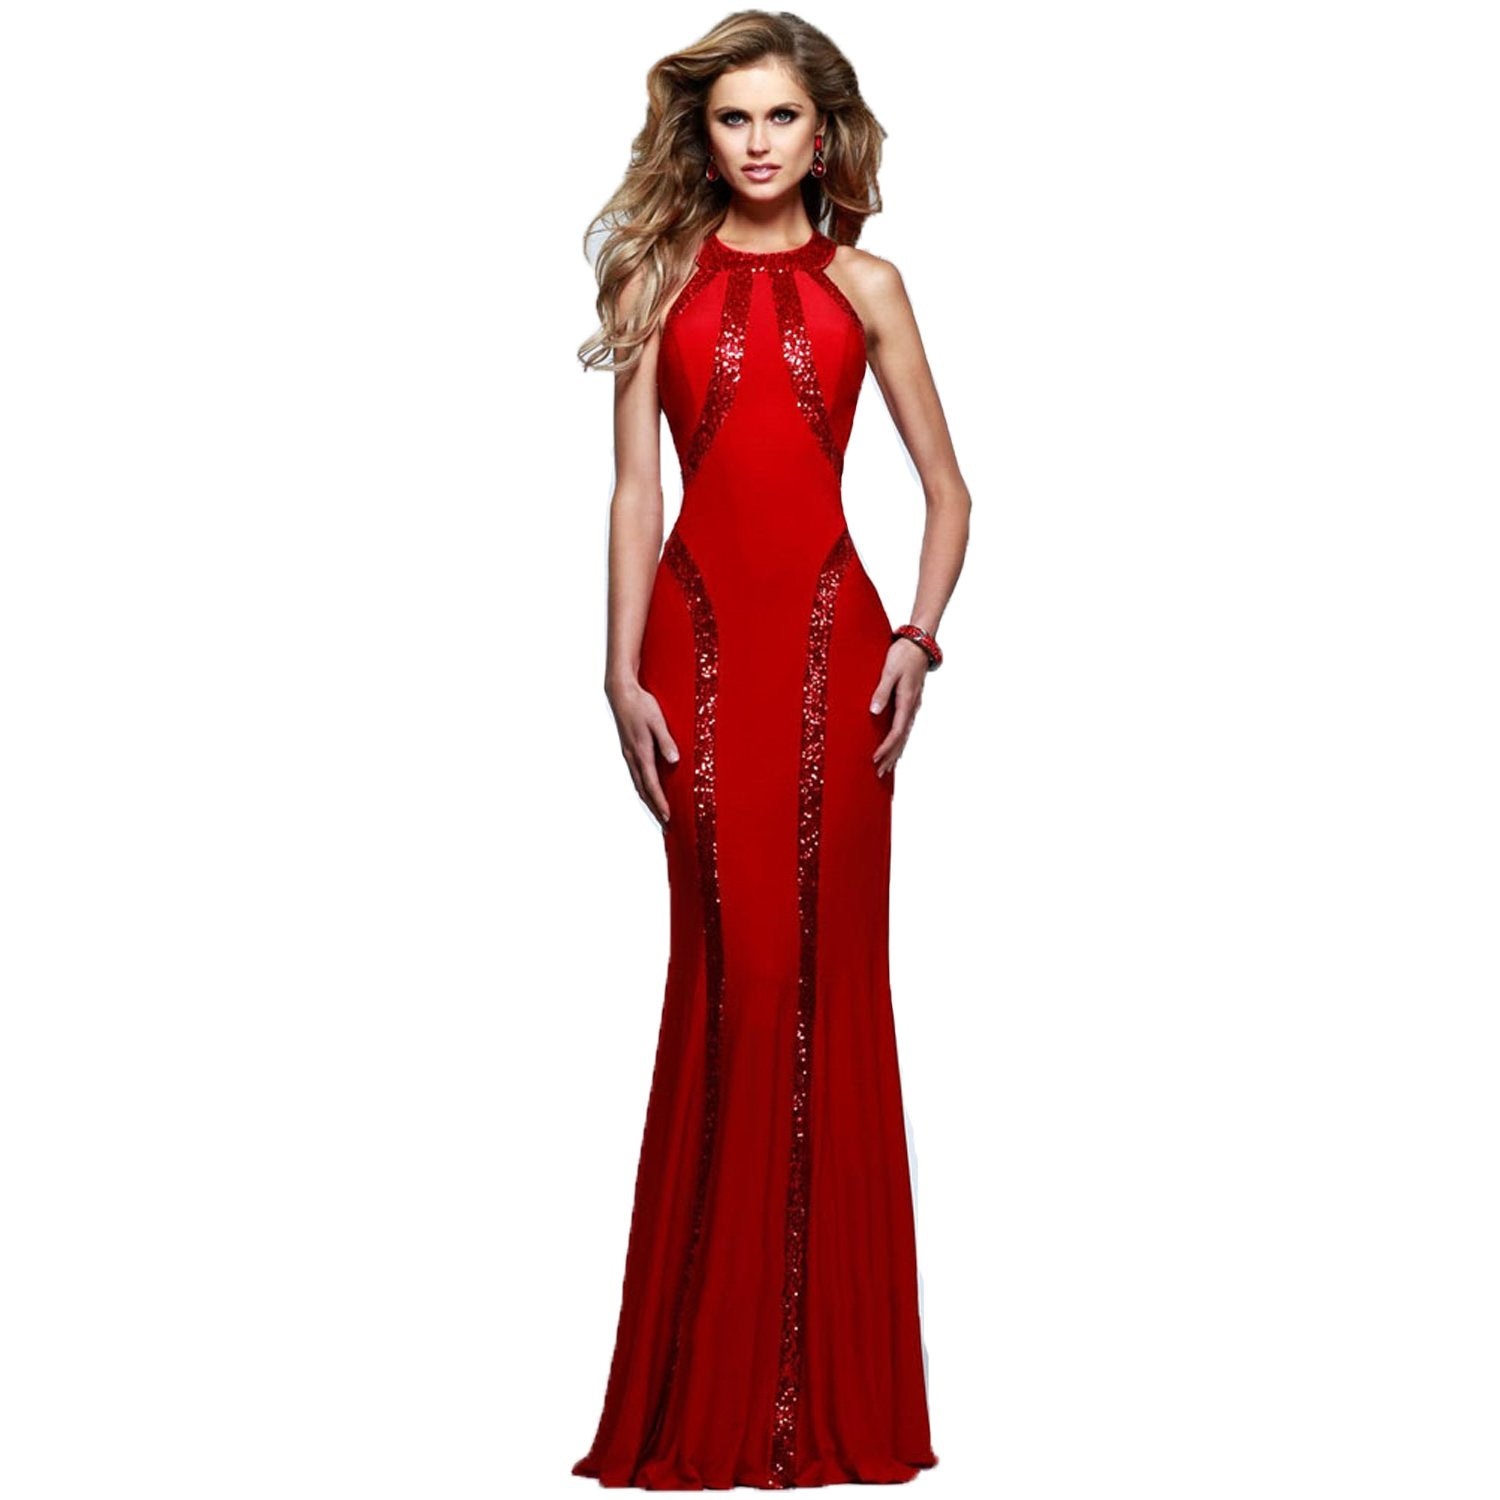 Jaune Paris Shimmer Sequin Halter Gown - Scarlet Red